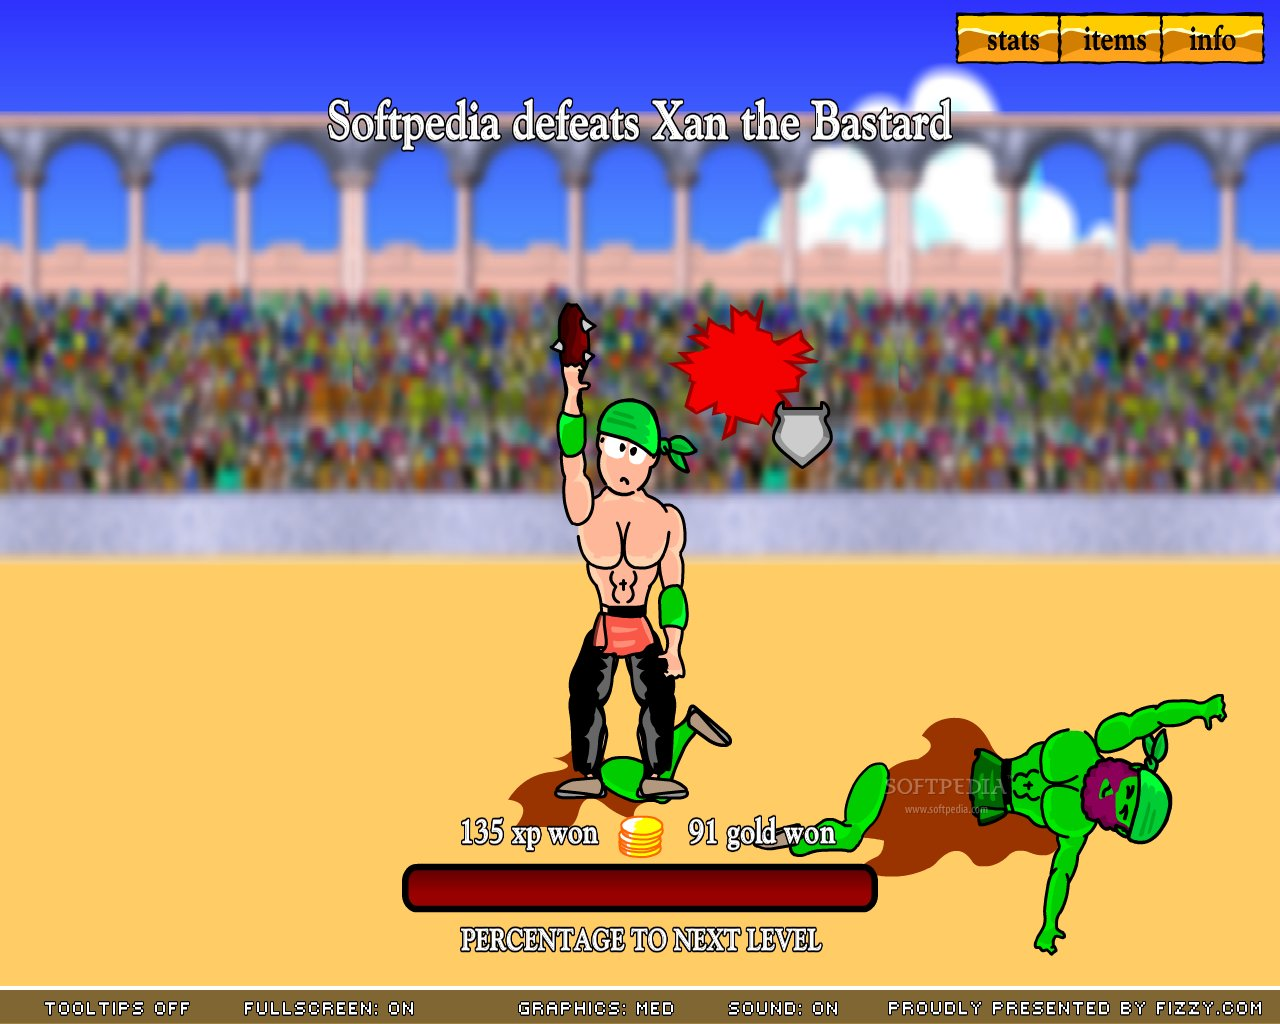 Swords and sandals - Pics Photos Swords And Sandals 1 Gladiator